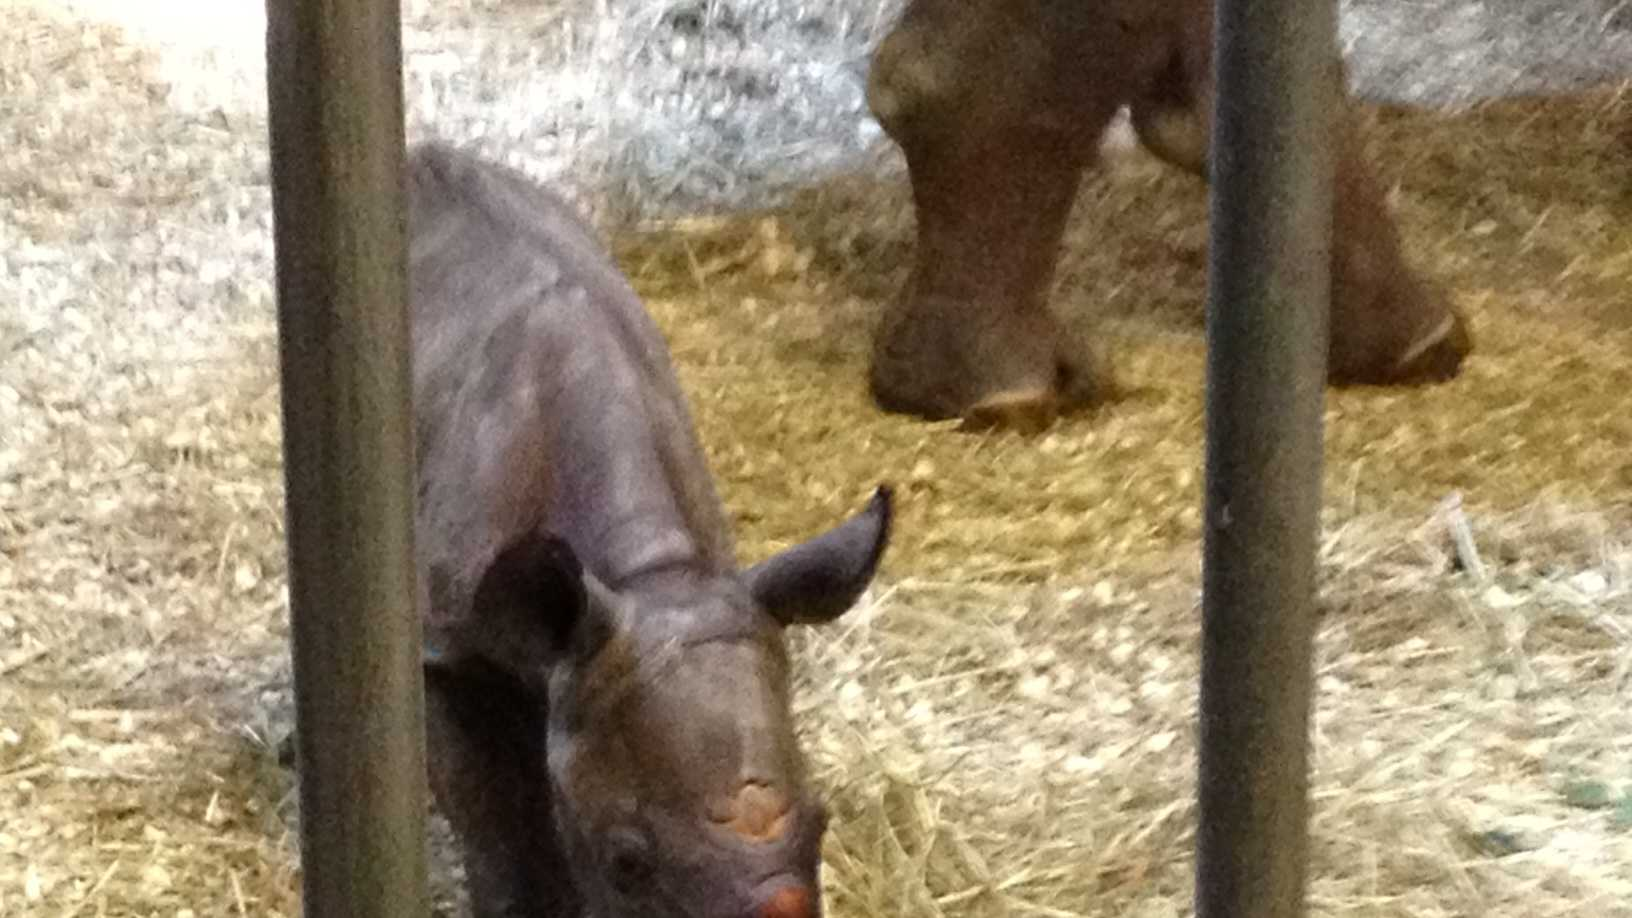 The Pittsburgh Zoo & PPG Aquarium has a new baby rhinoceros.